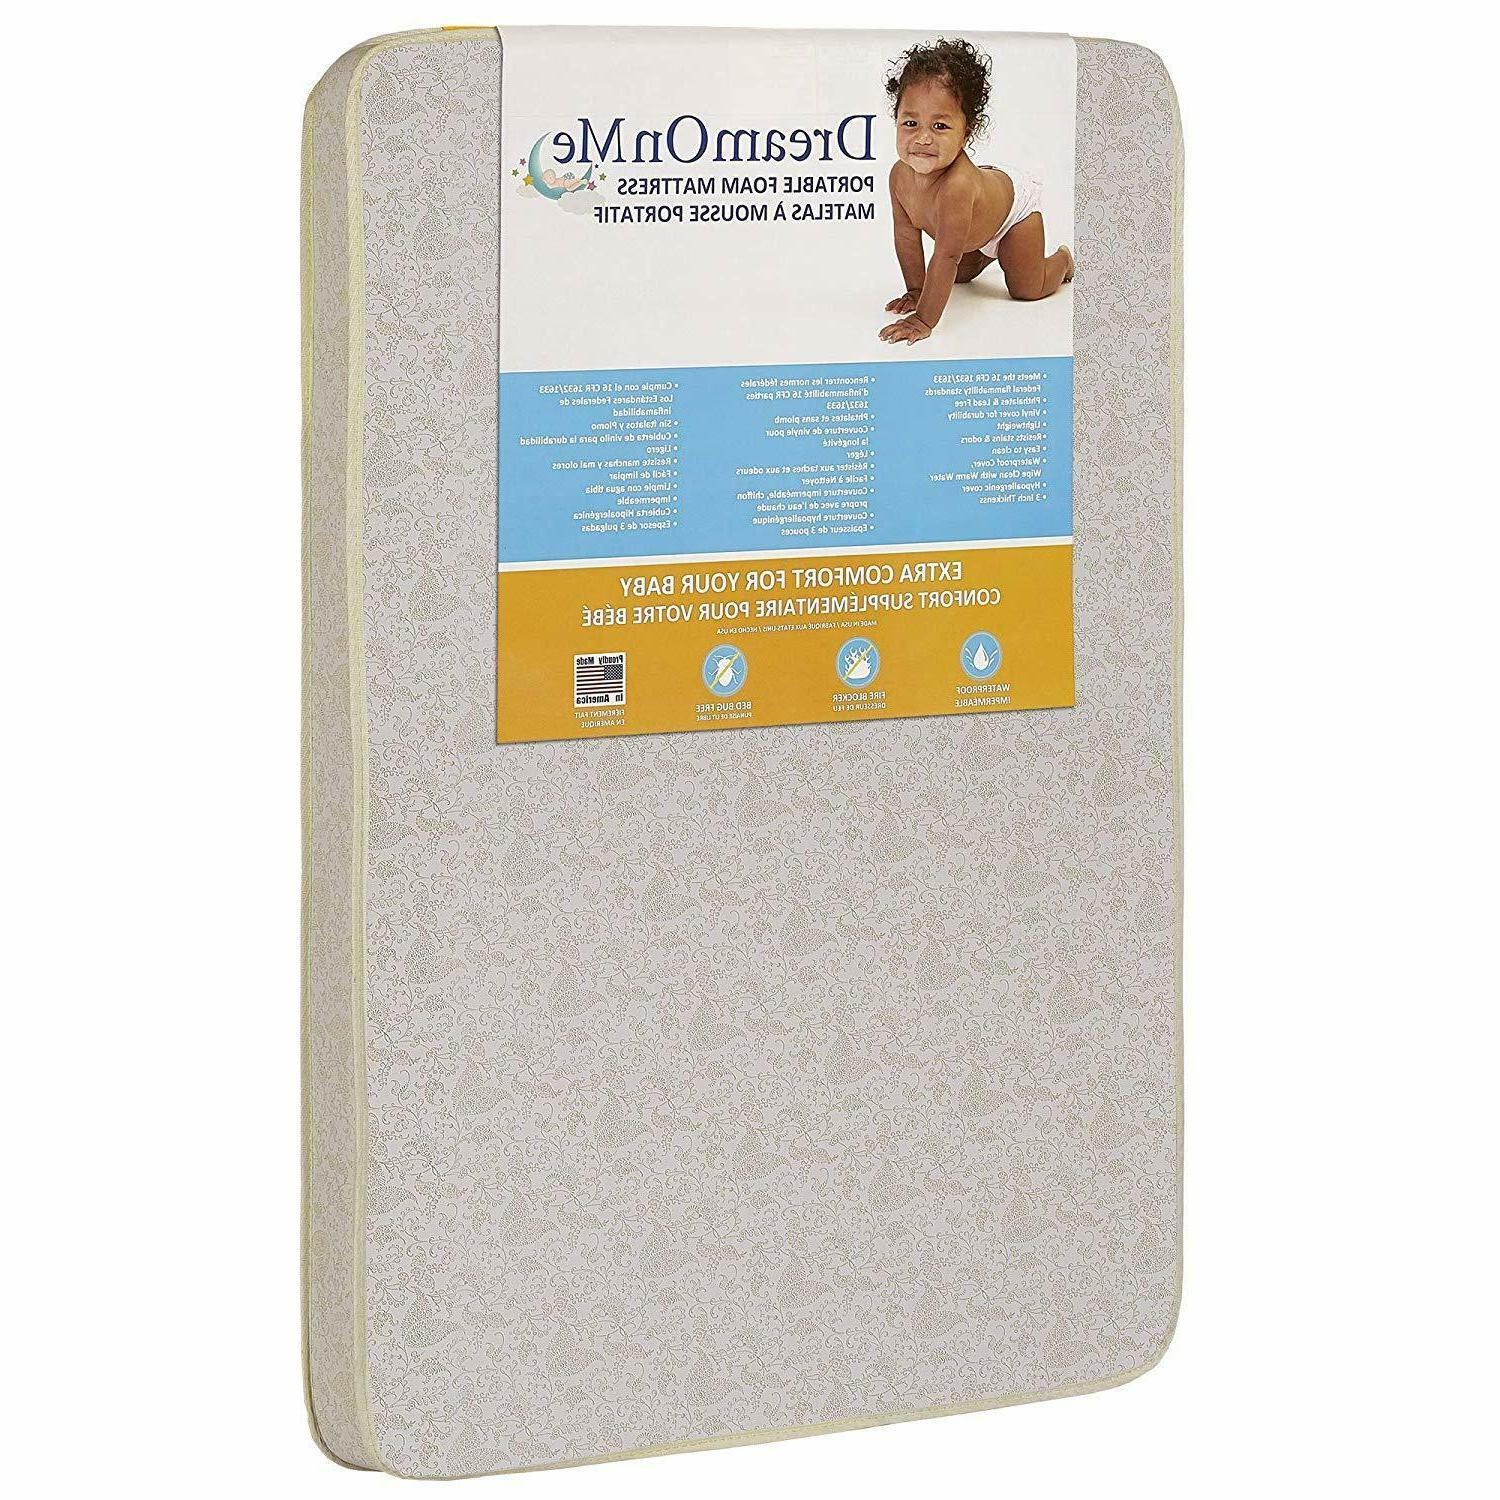 foam pack and play mattress 37 5